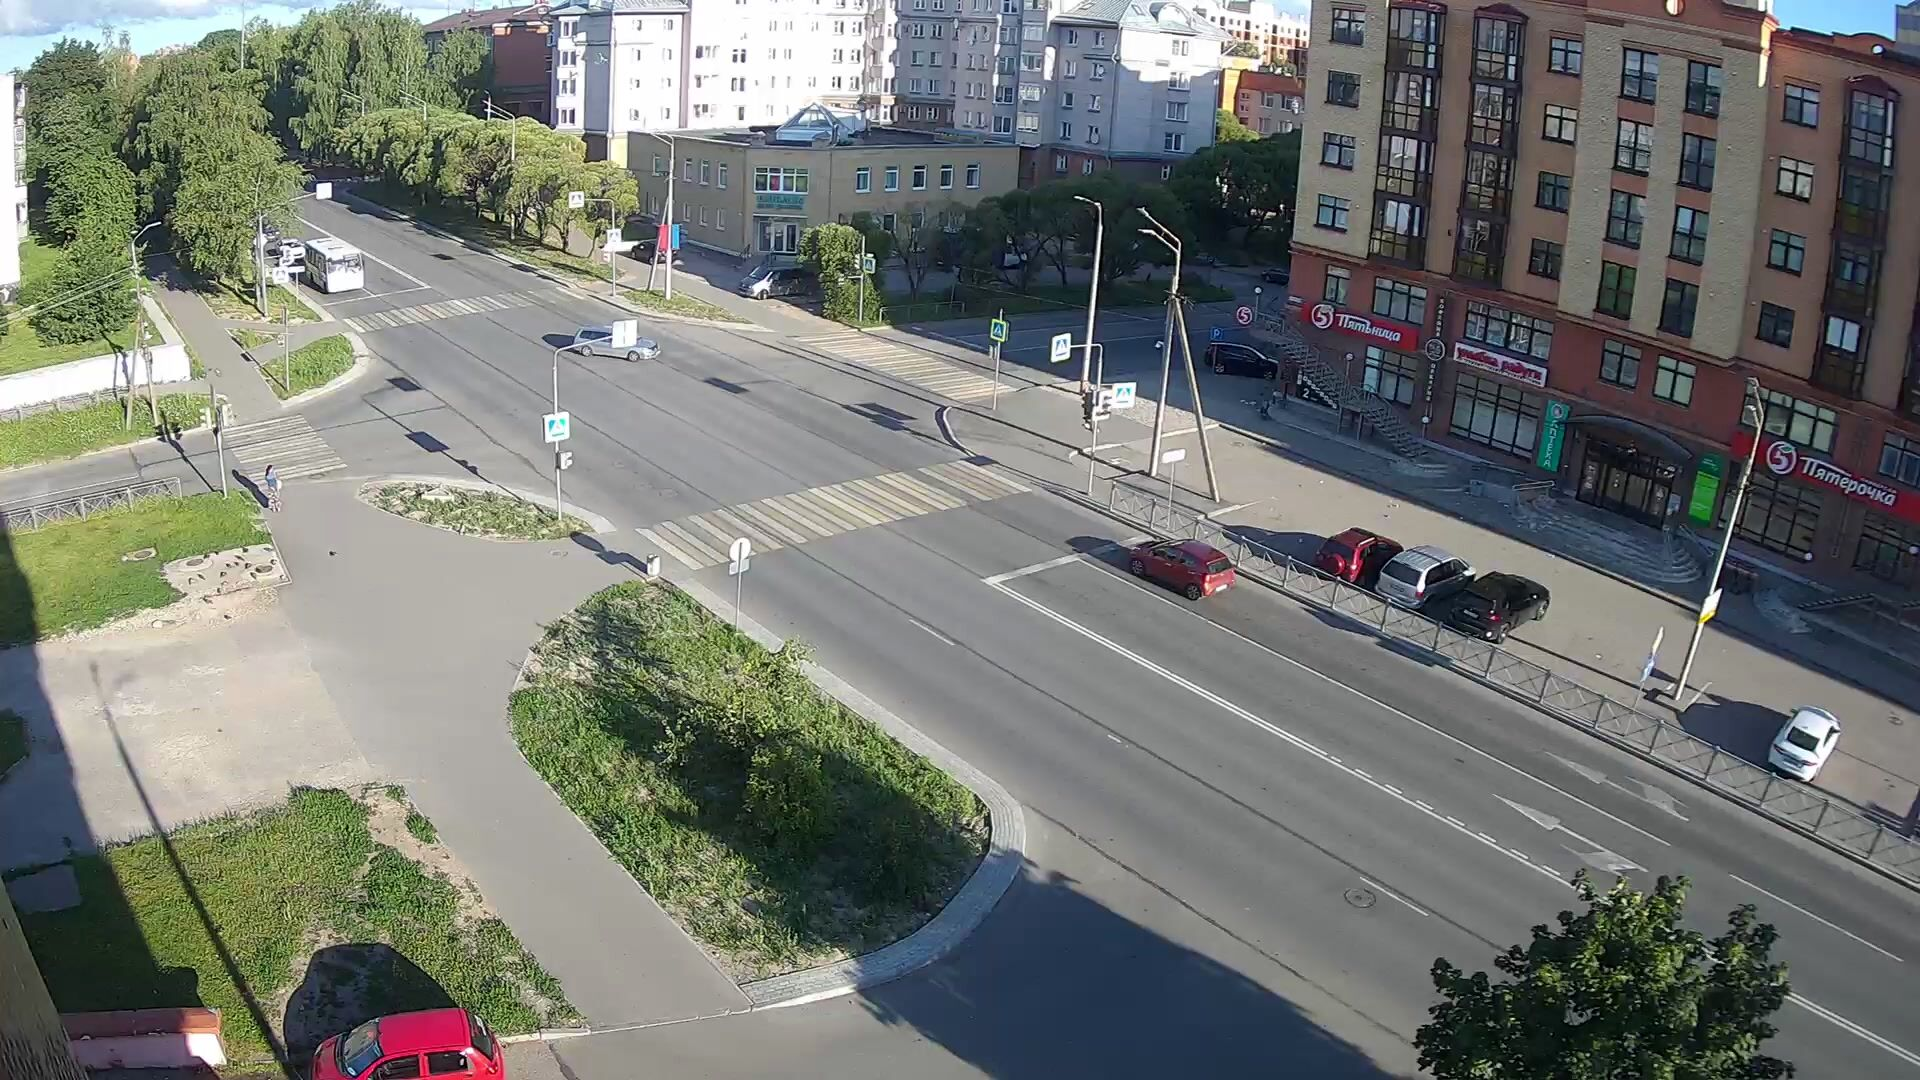 Webcam crossroad Rijskogo and Narodnoy, Pskov, Russia